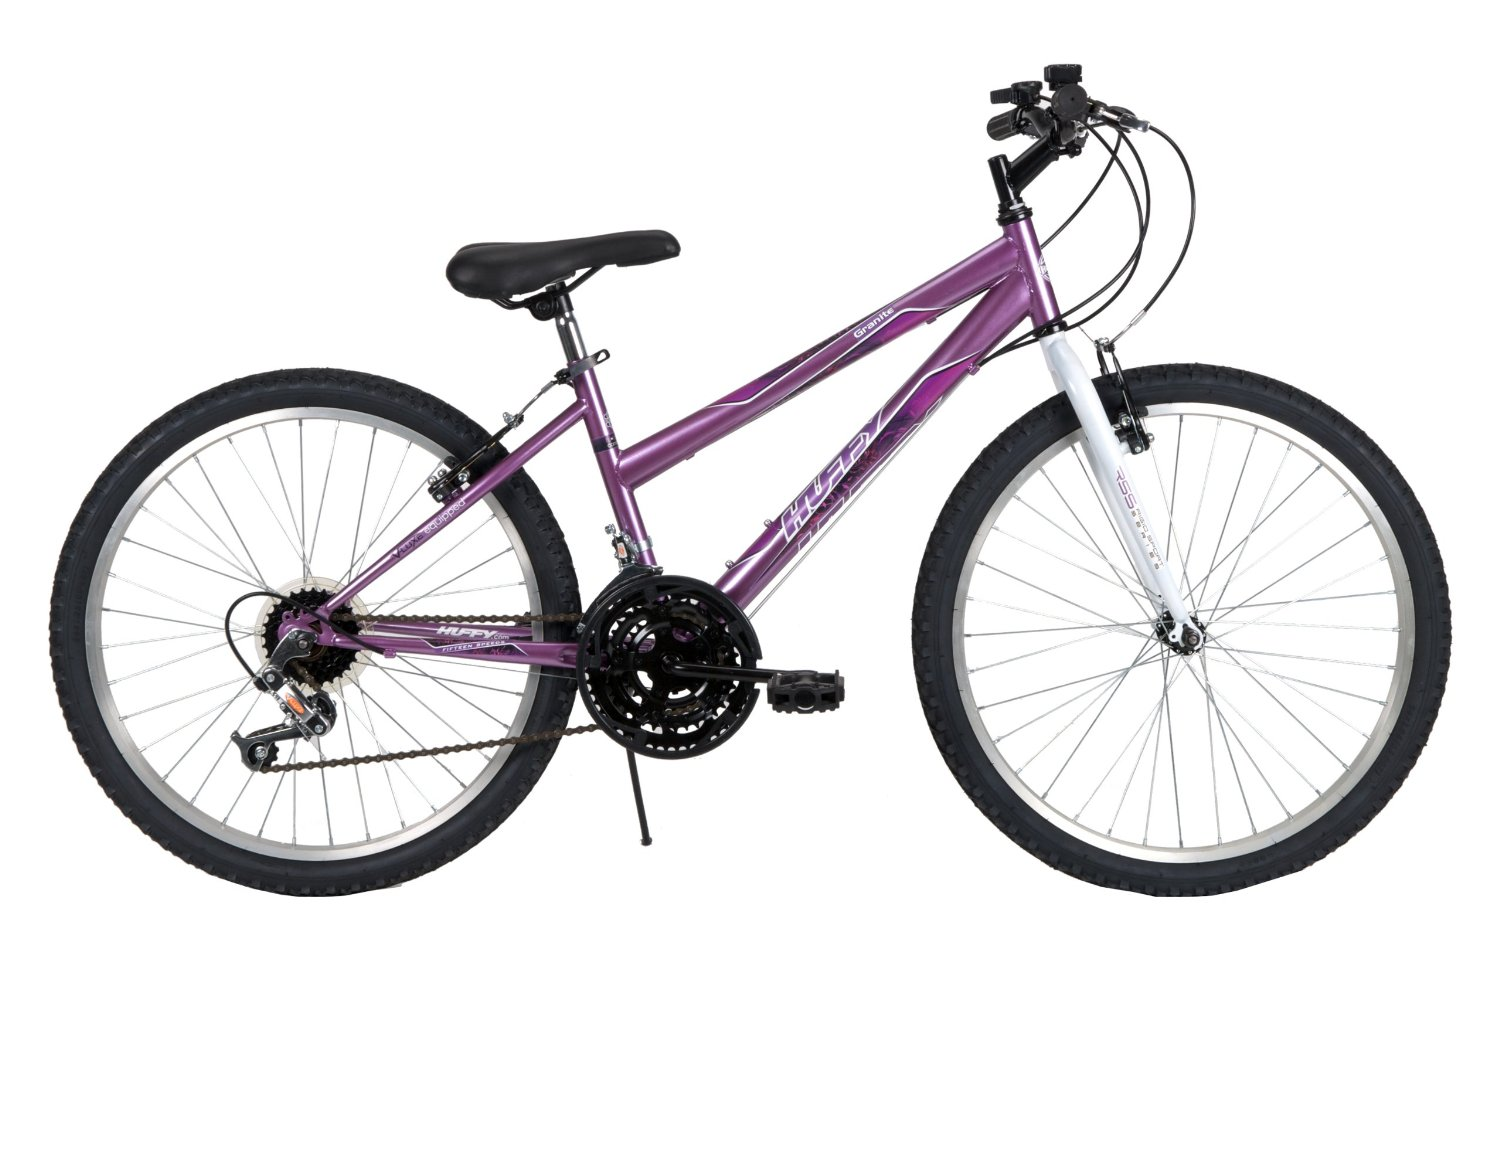 Huffy Bicycle Company Women's 24514 Granite Bike, Metallic Purple, 24-Inch